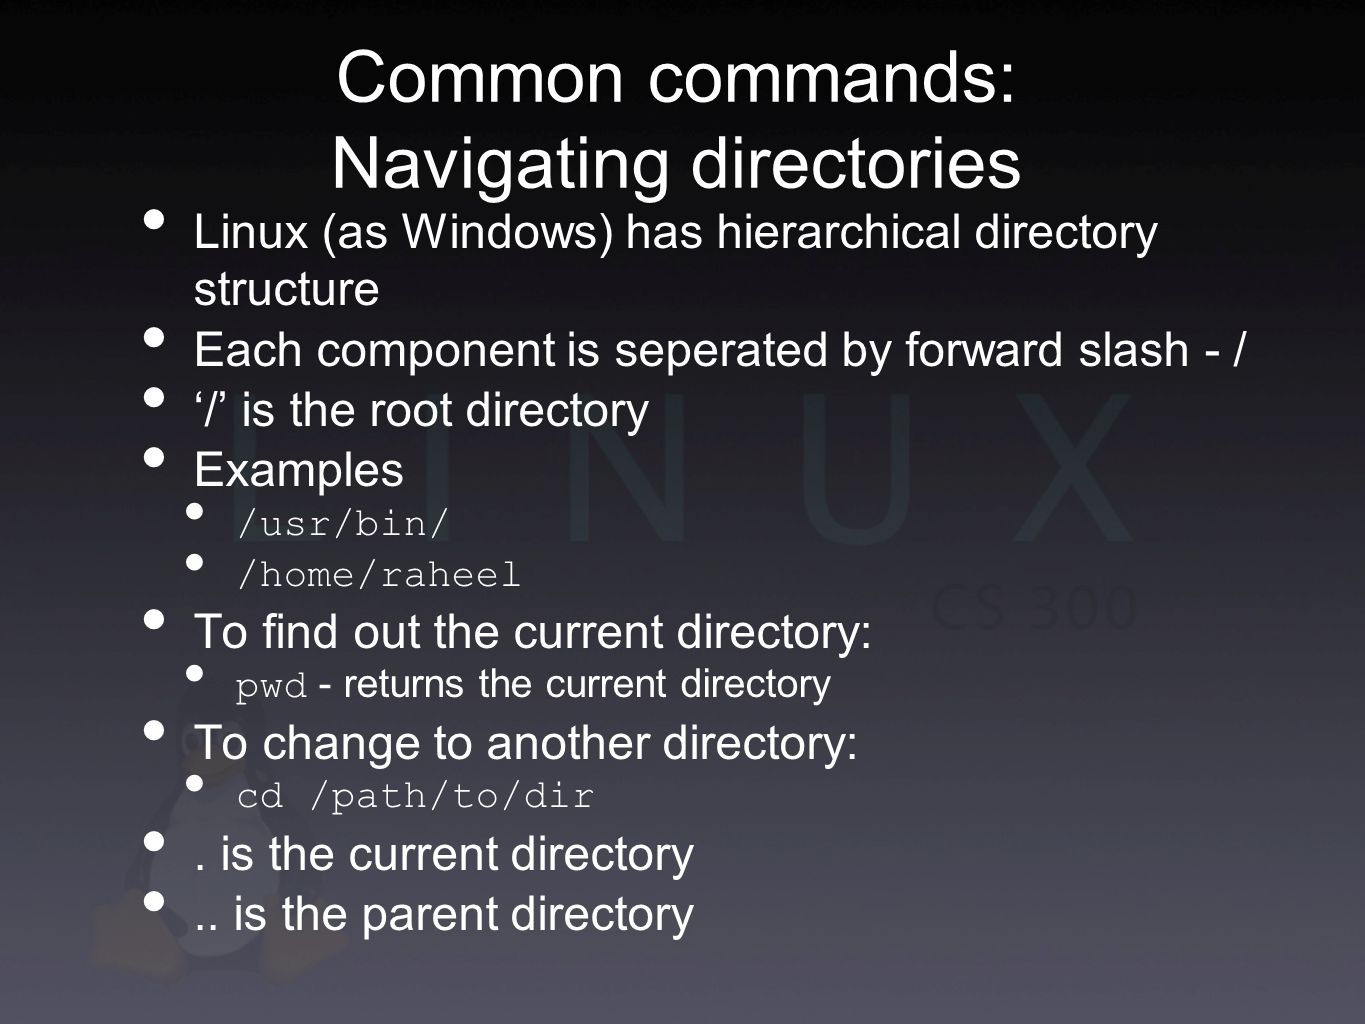 Common commands: Navigating directories Linux (as Windows) has hierarchical directory structure Each component is seperated by forward slash - / '/' is the root directory Examples /usr/bin/ /home/raheel To find out the current directory: pwd - returns the current directory To change to another directory: cd /path/to/dir.